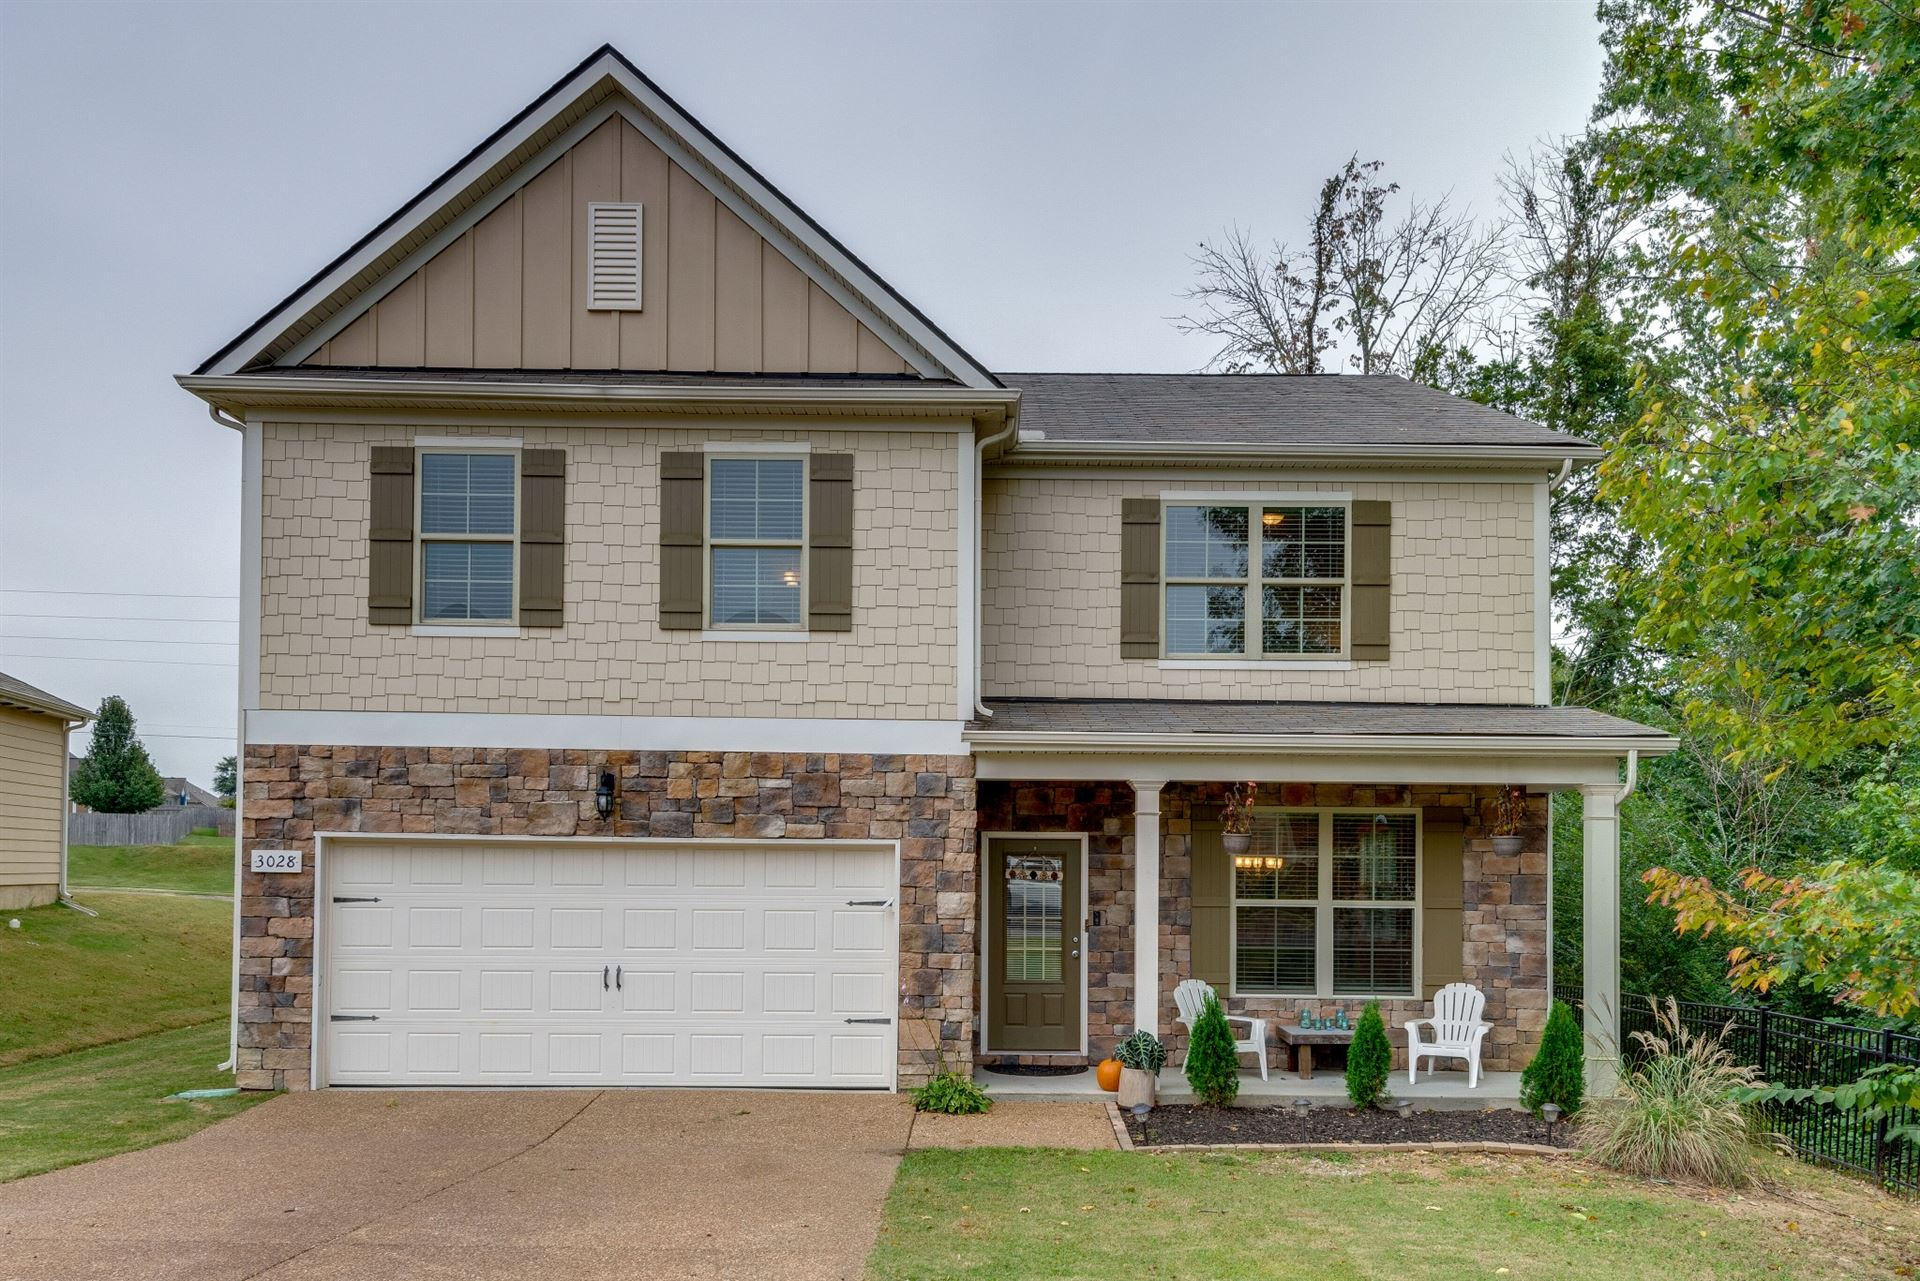 Photo of 3028 Alan Dr, Spring Hill, TN 37174 (MLS # 2229285)